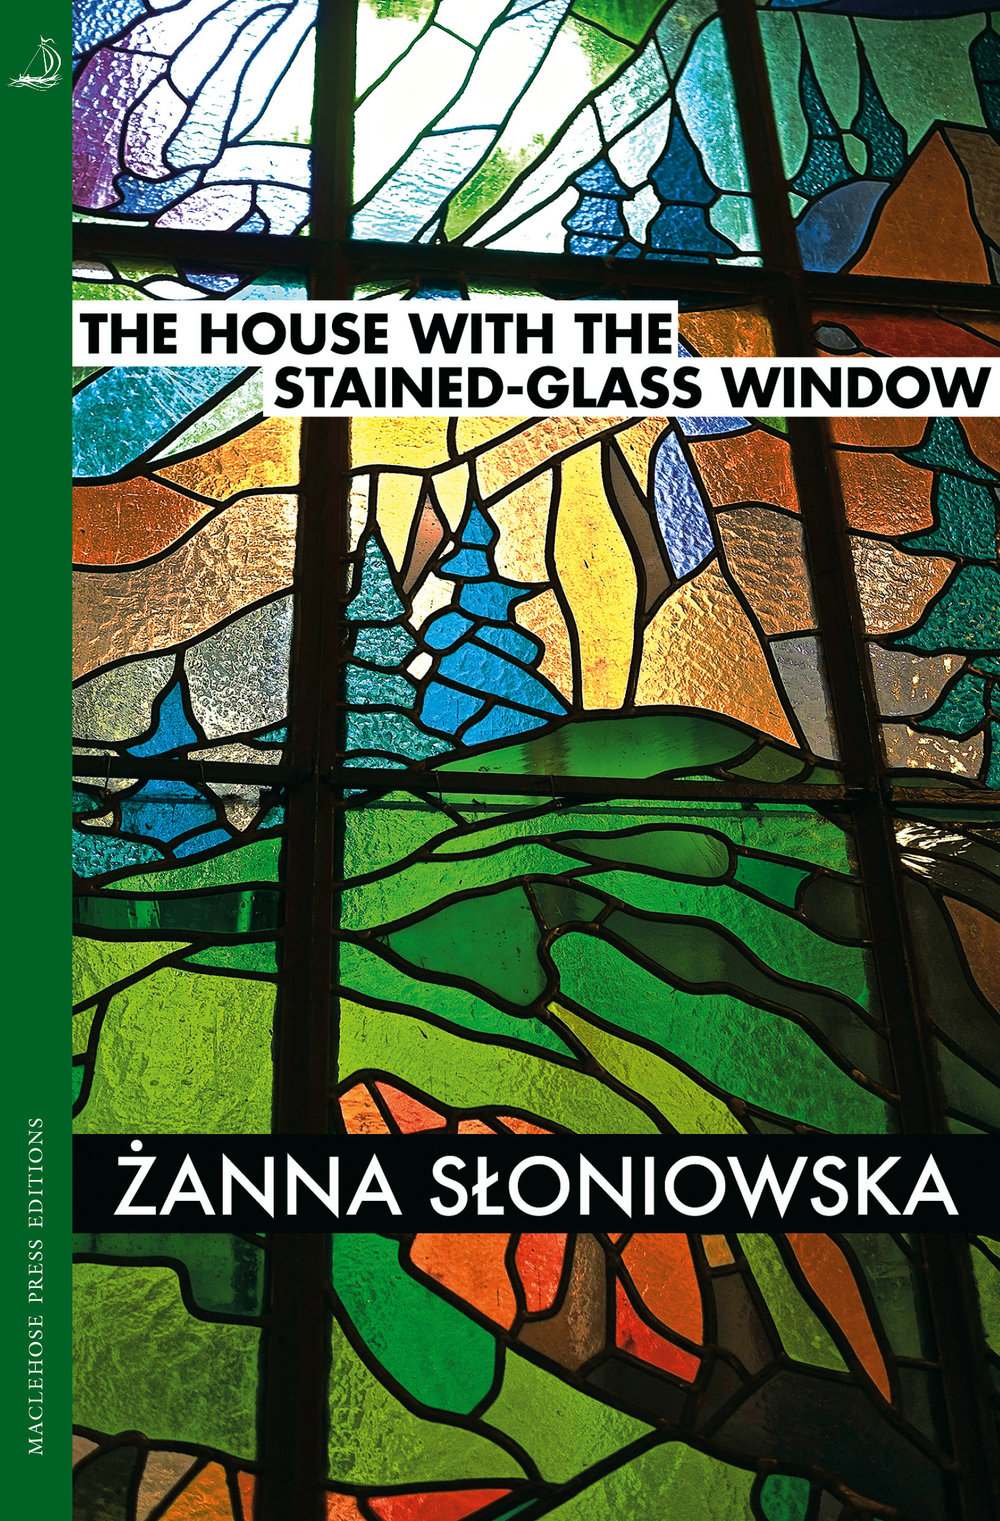 RTW8_House_With_The_Stained-Glass_Window_FC.jpg